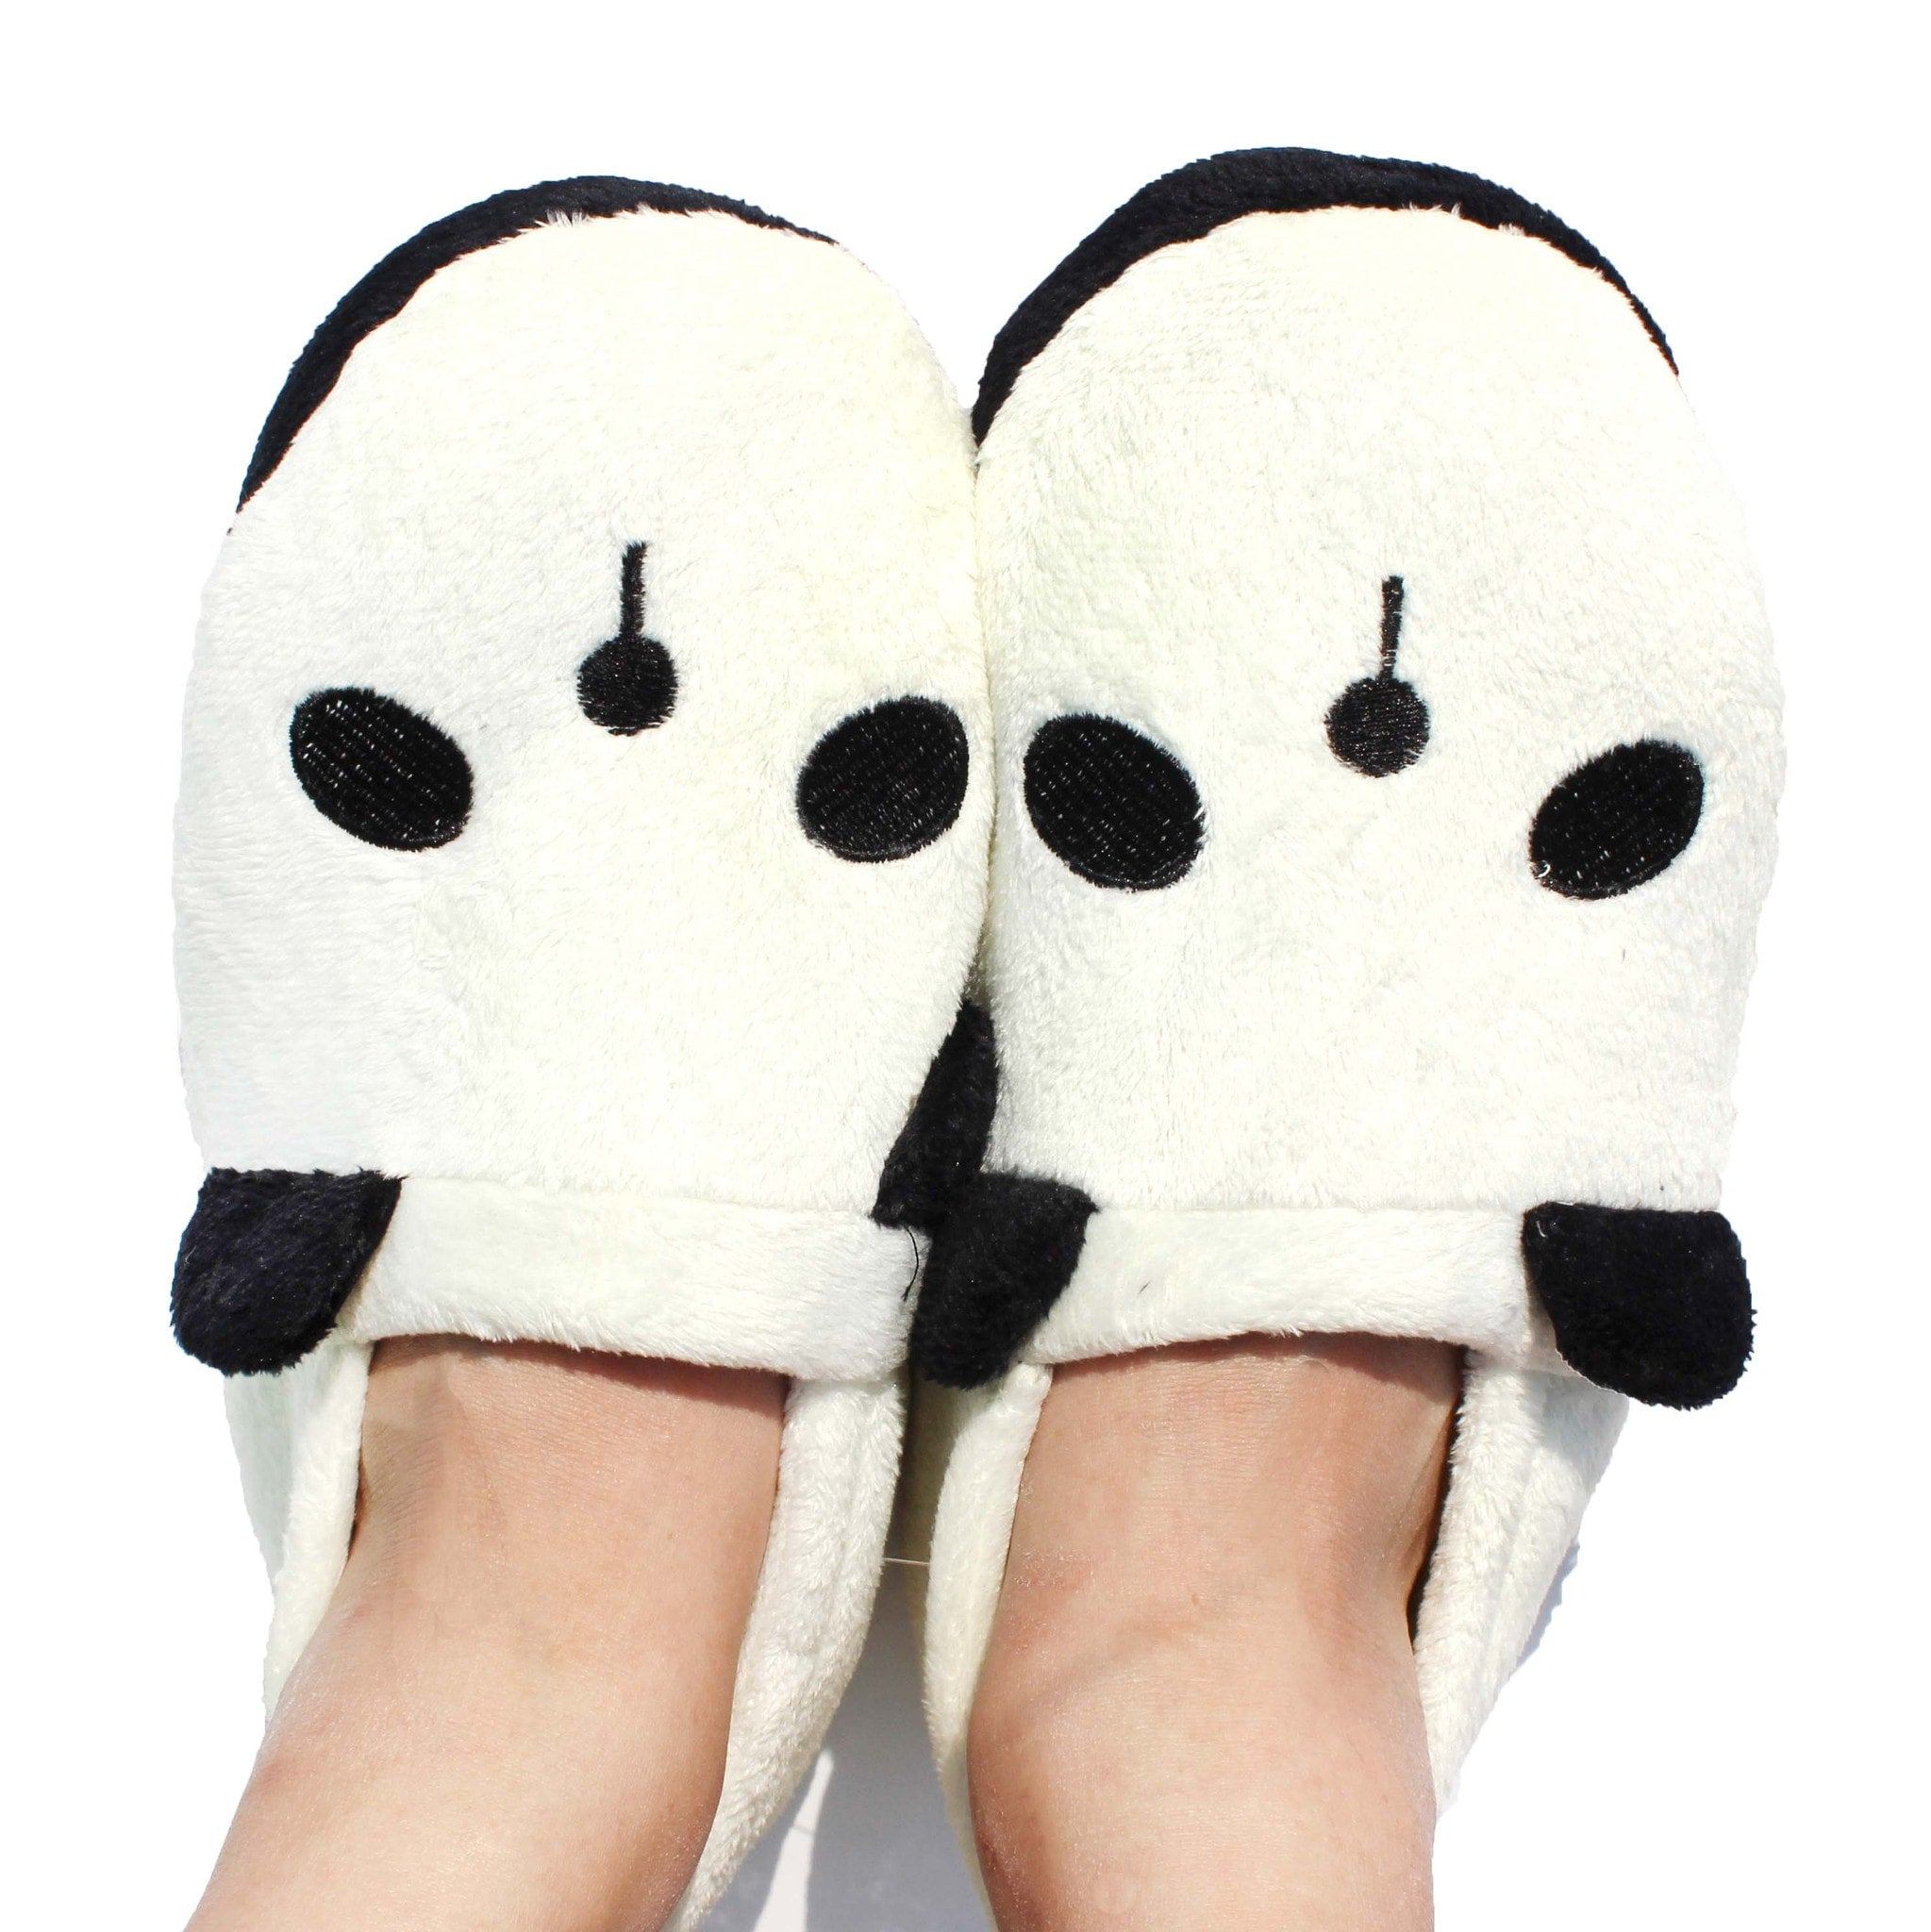 Panda Bear Animal Shaped Slip-On At Home Slippers Shoes for Women